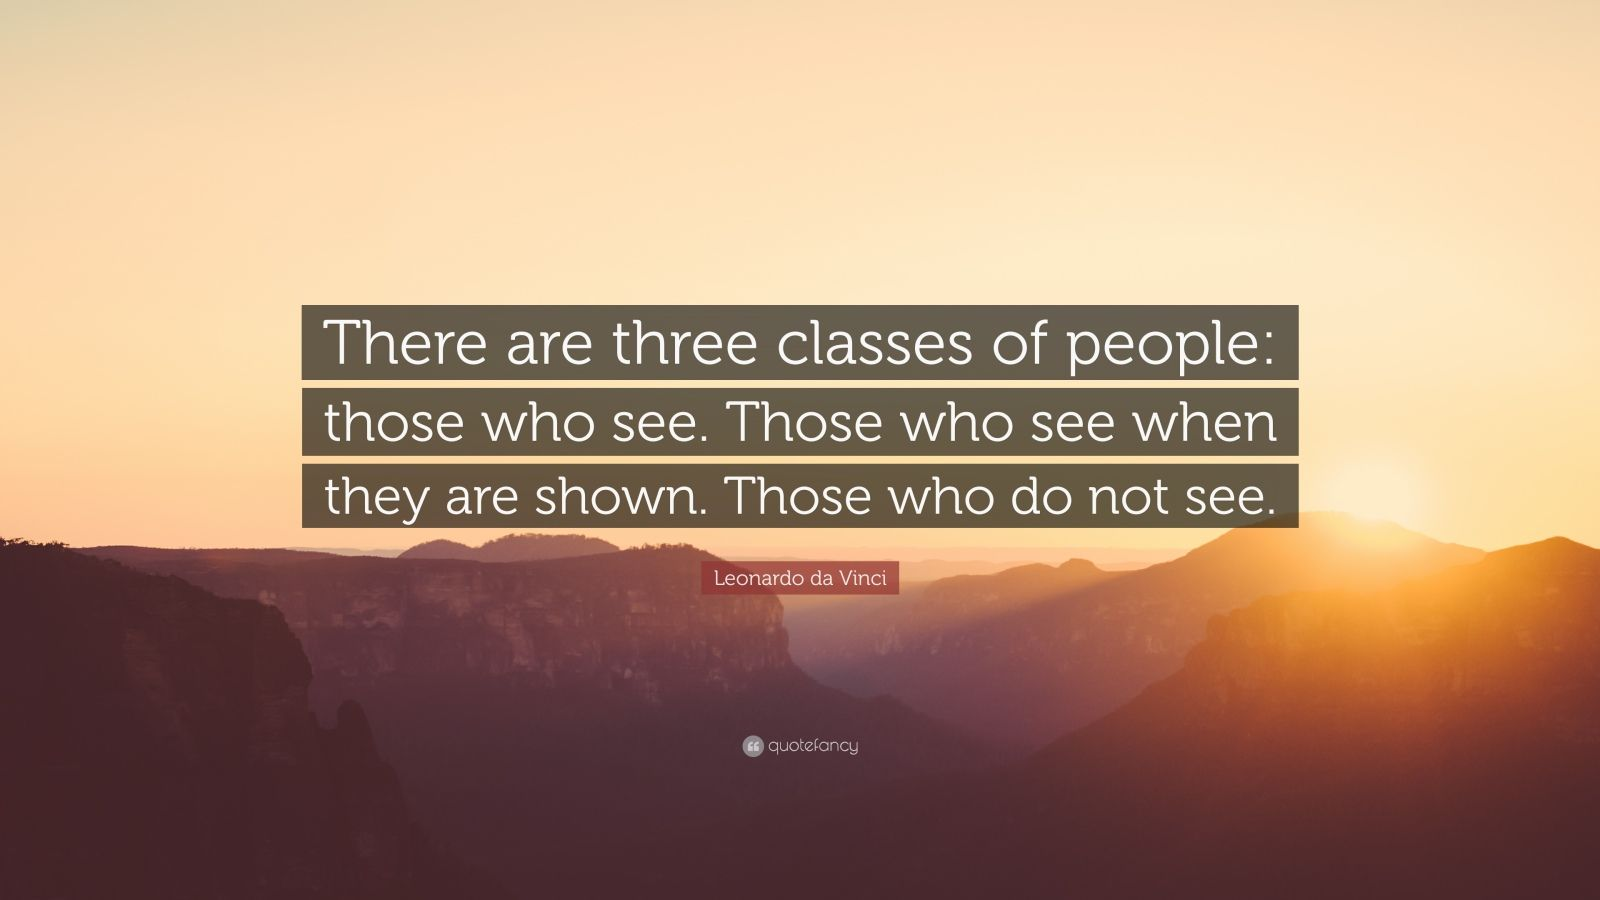 """Leonardo da Vinci Quote: """"There are three classes of people: those who see. Those who see when they are shown. Those who do not see."""""""